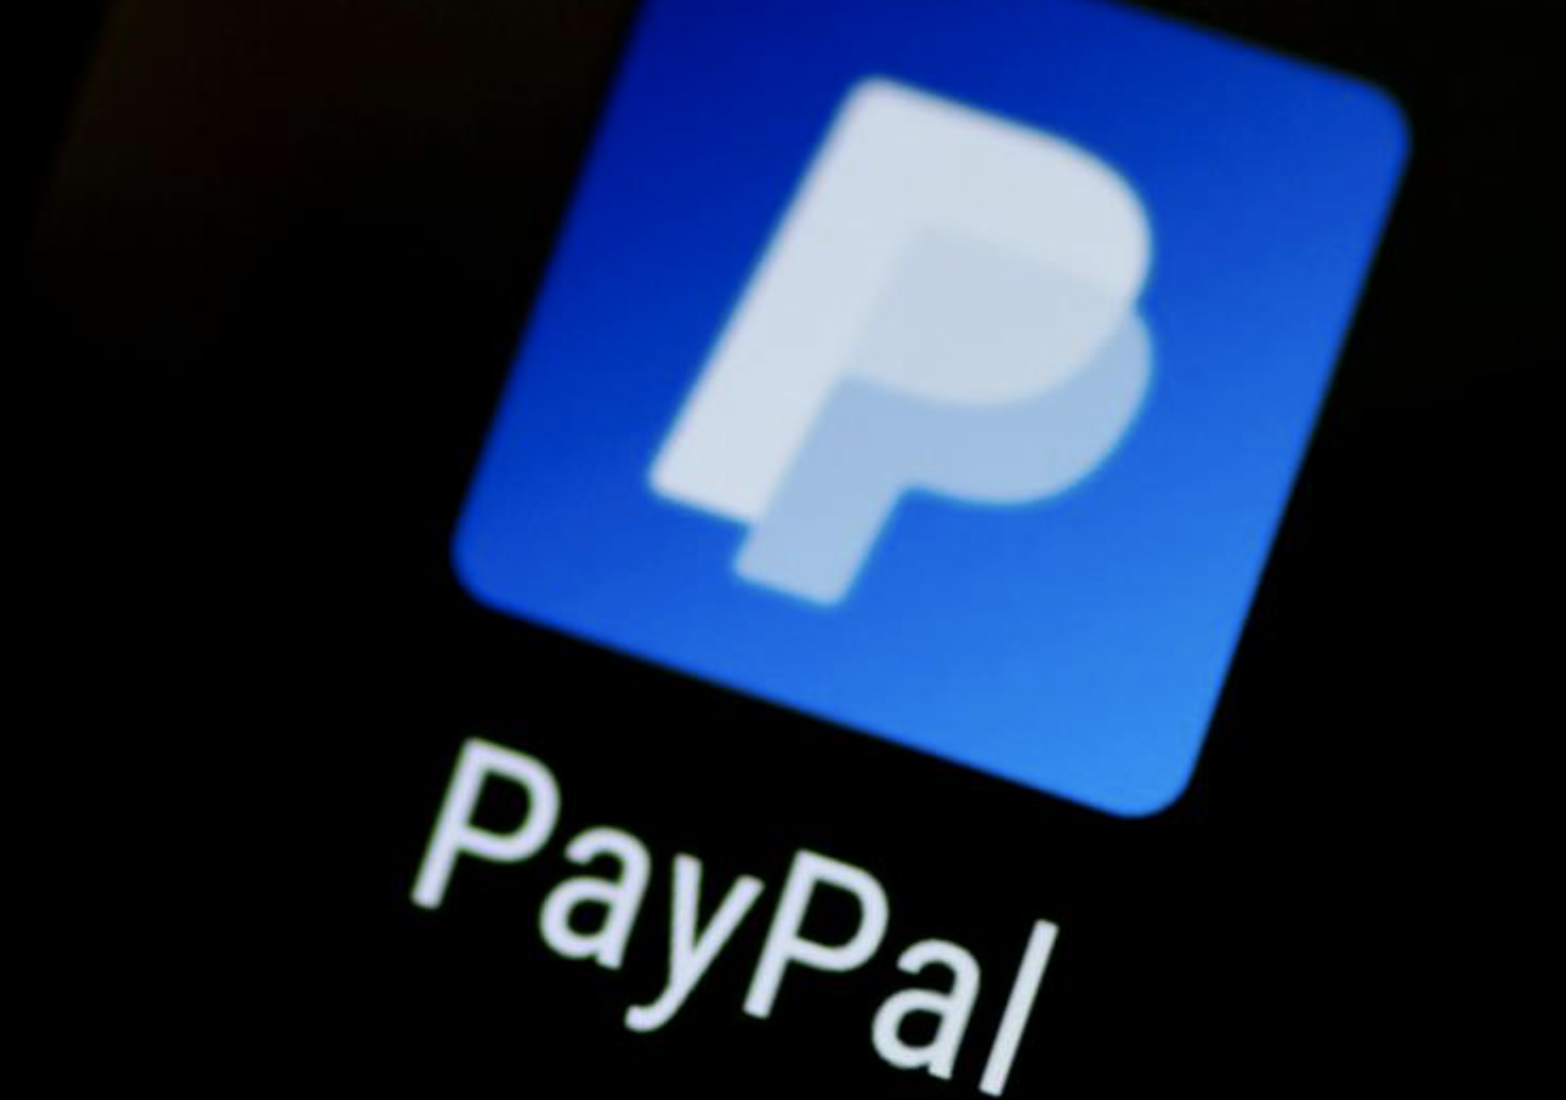 PayPal Unlikely to Invest Cash in Cryptocurrencies: CNBC